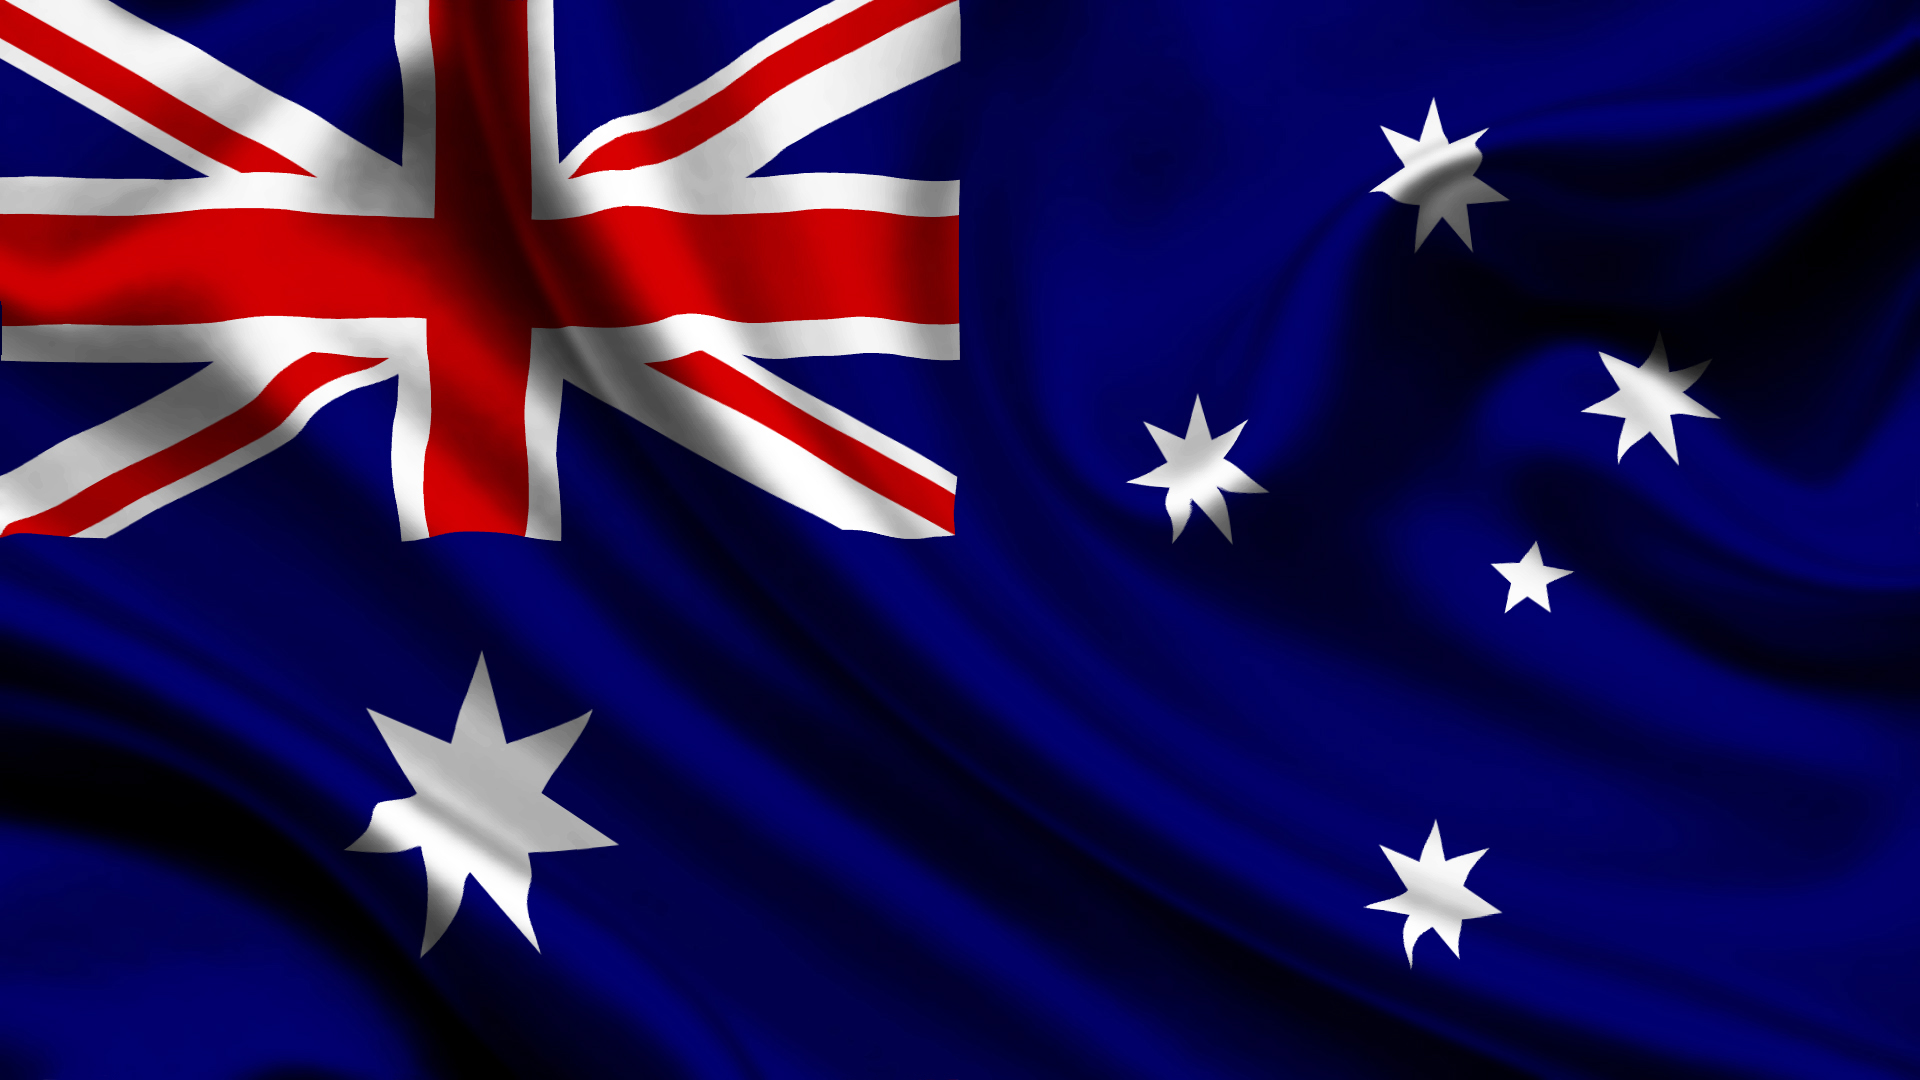 Australia Flag Cross Wallpapers and photos